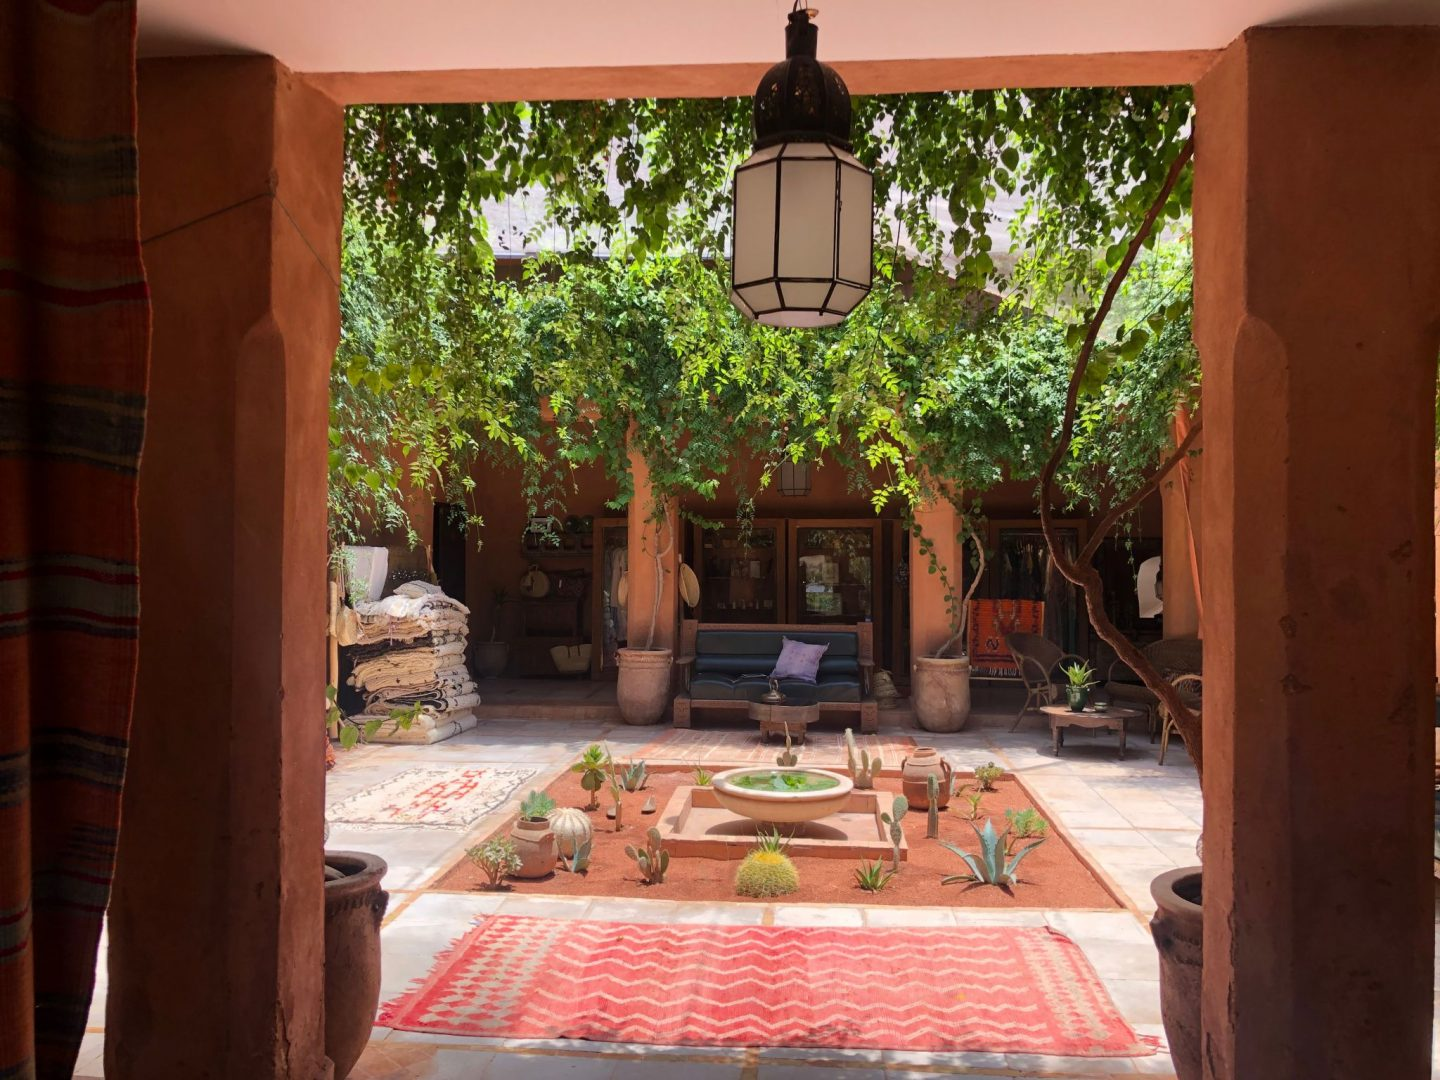 Entrance courtyard decorated with a selection of carpets, cushions and pottery etc